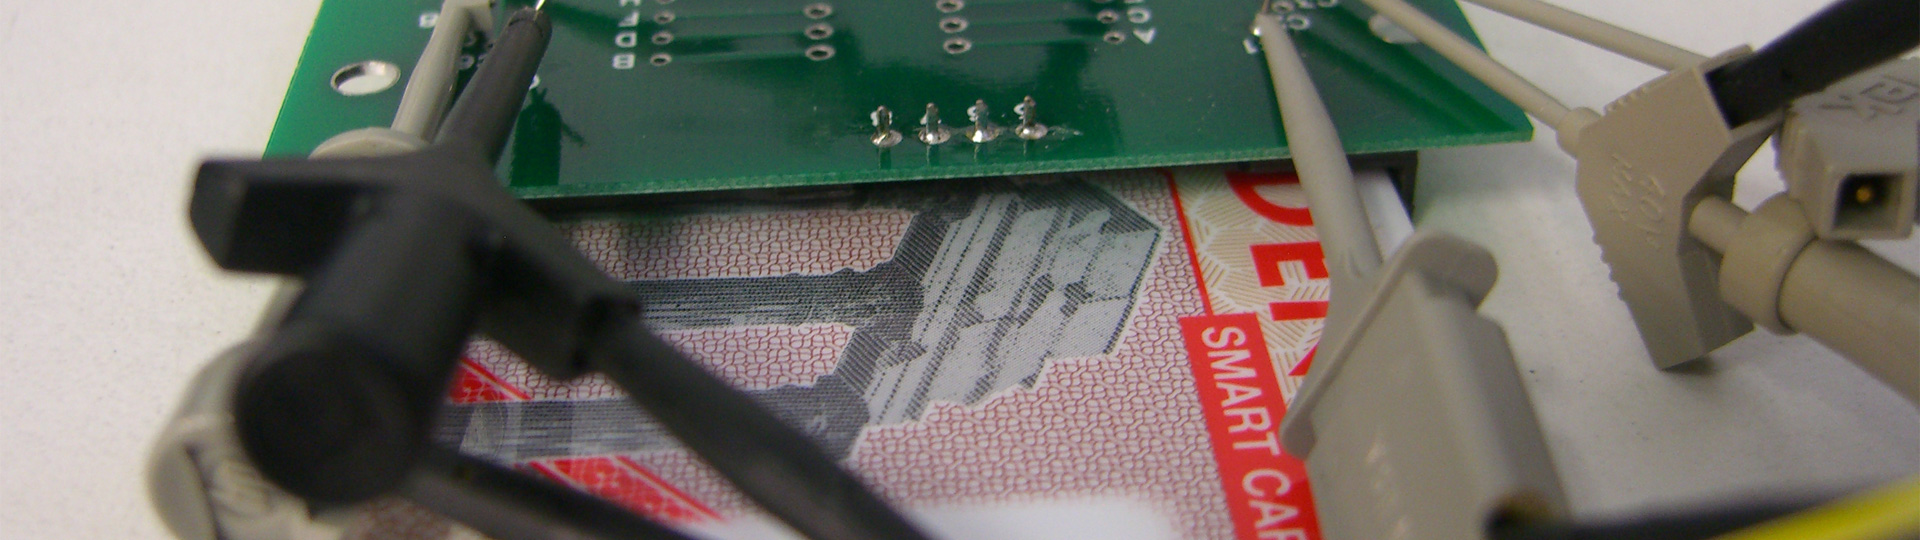 Smart card engineering